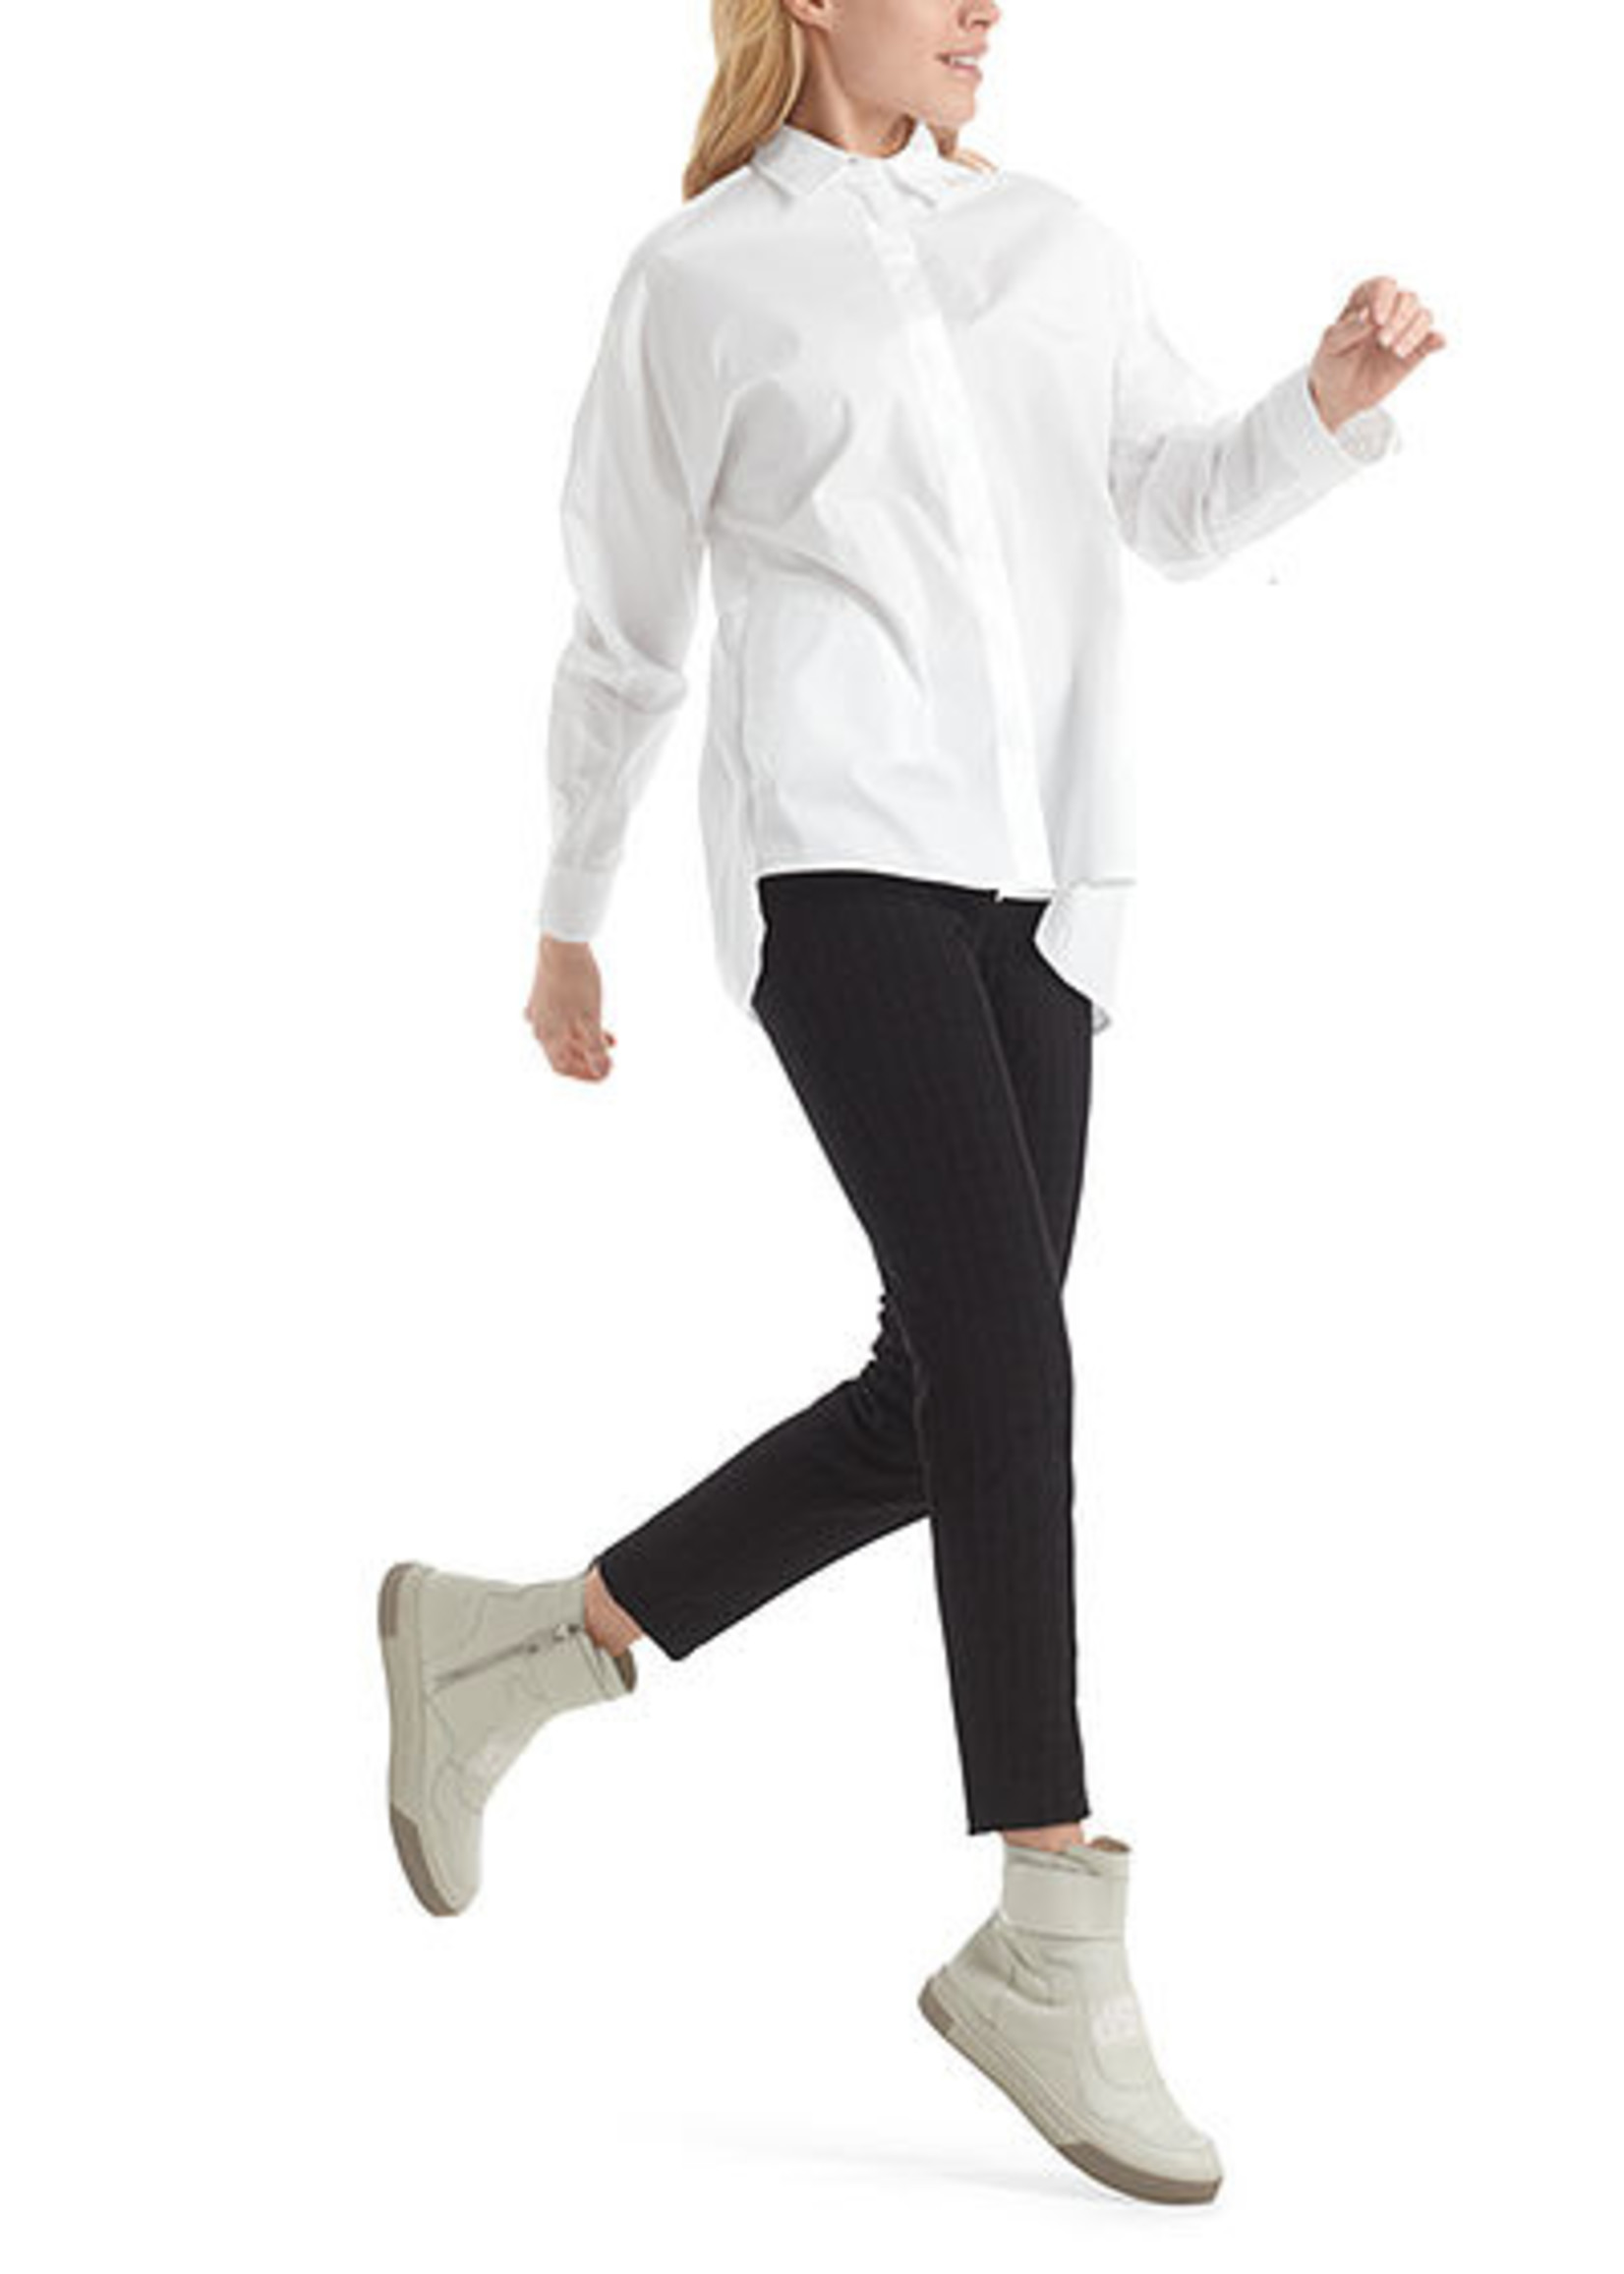 Marccain Sports Blouse RS 51.02 W30 white